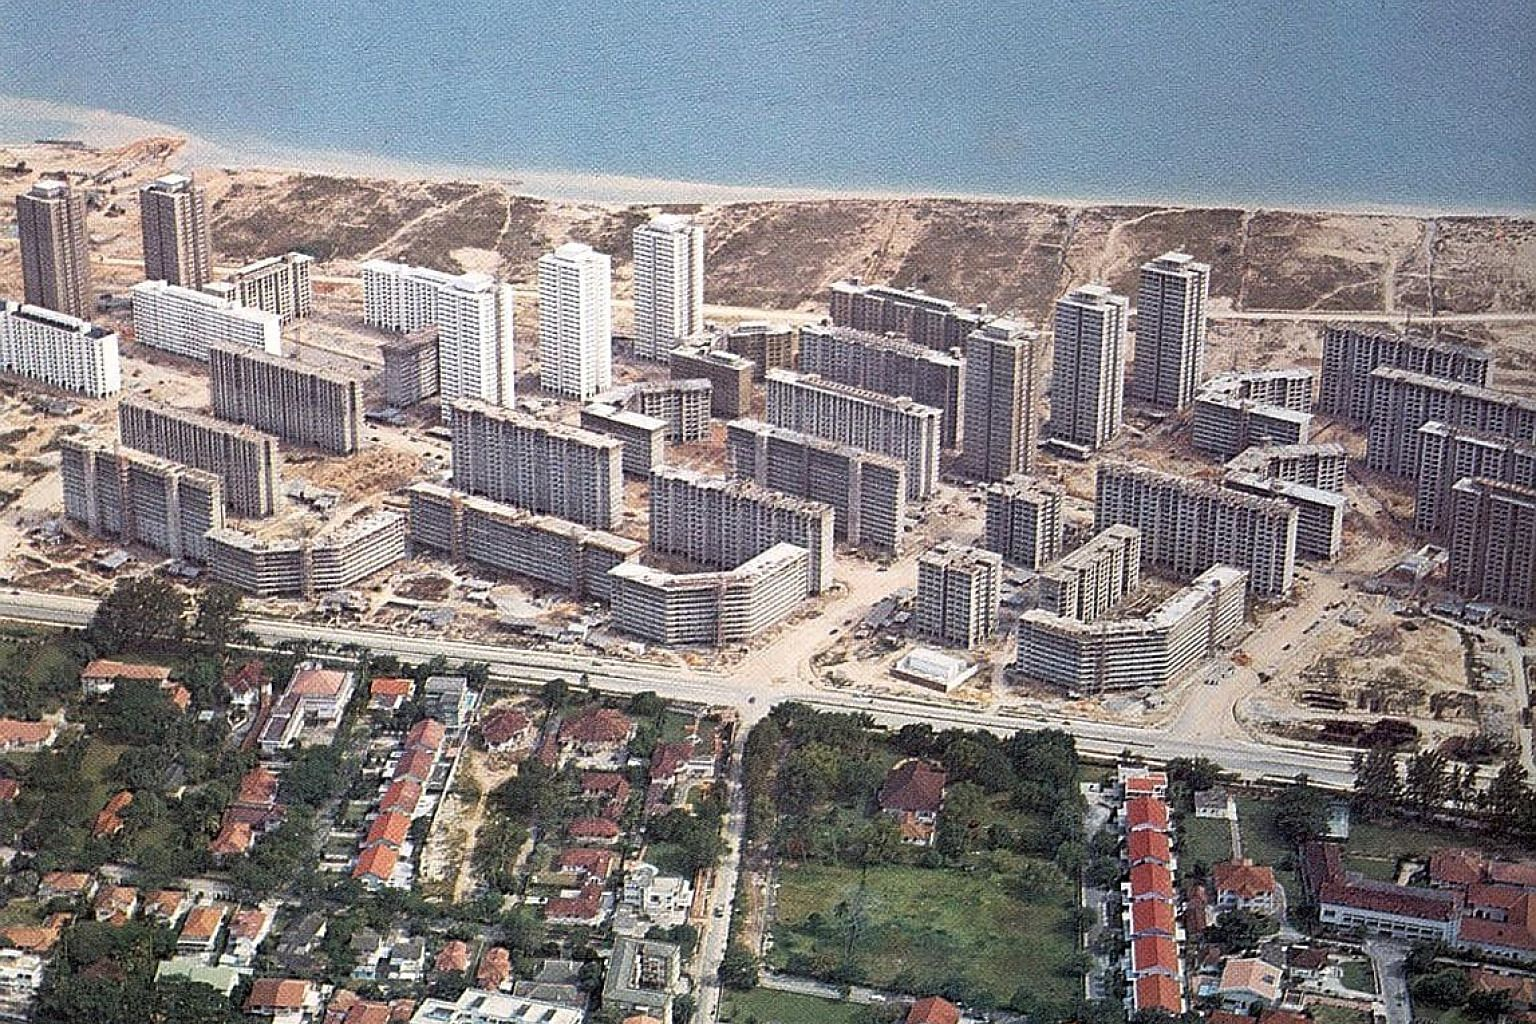 The Marine Parade estate being developed in a hurry in the 1970s over just three years. But the work of redeveloping it should span decades.